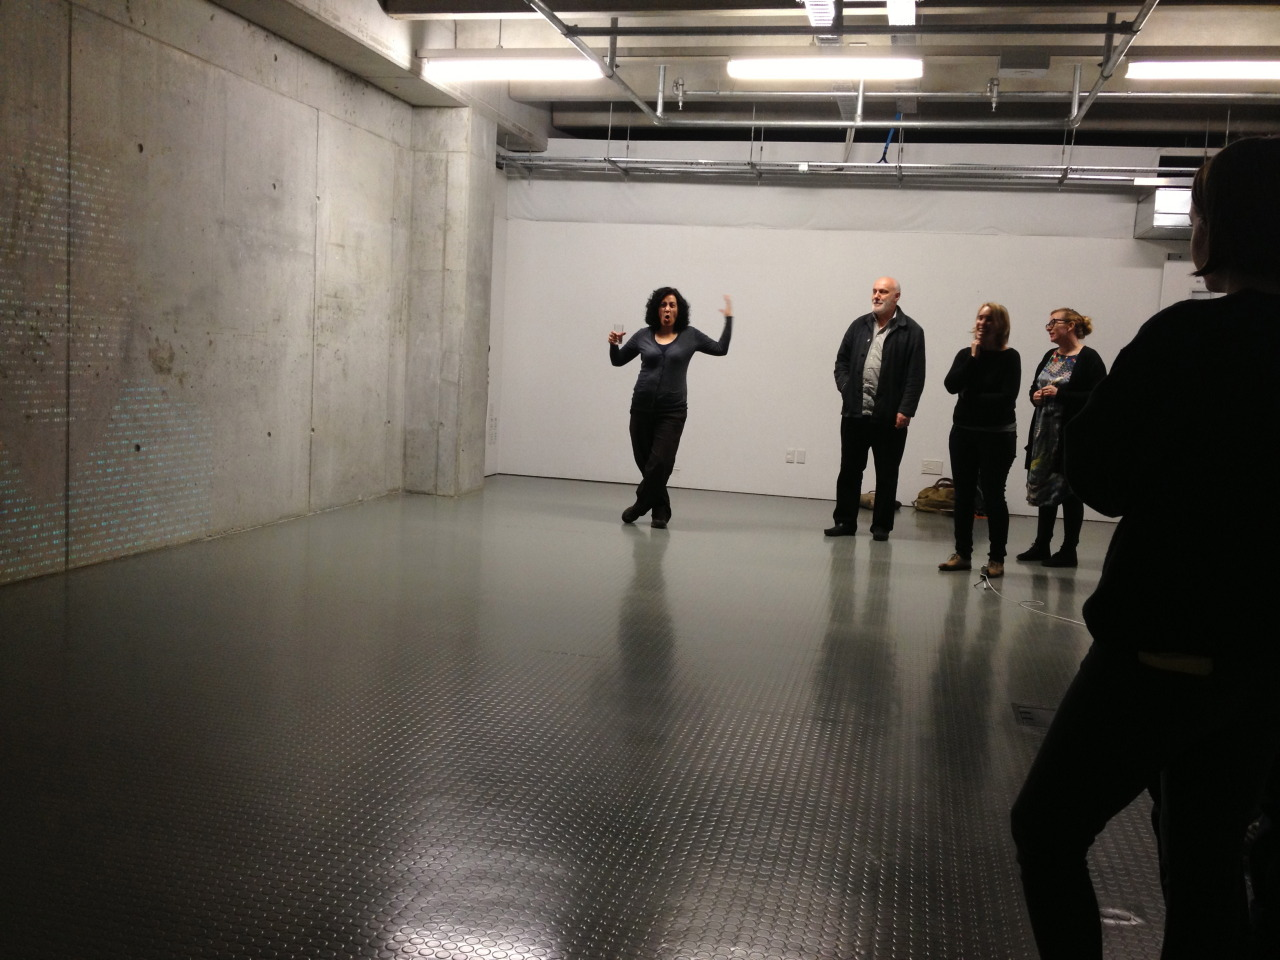 Nooroa Tapuni's studio critique - art and performance research participants can become very passionate about ideas!